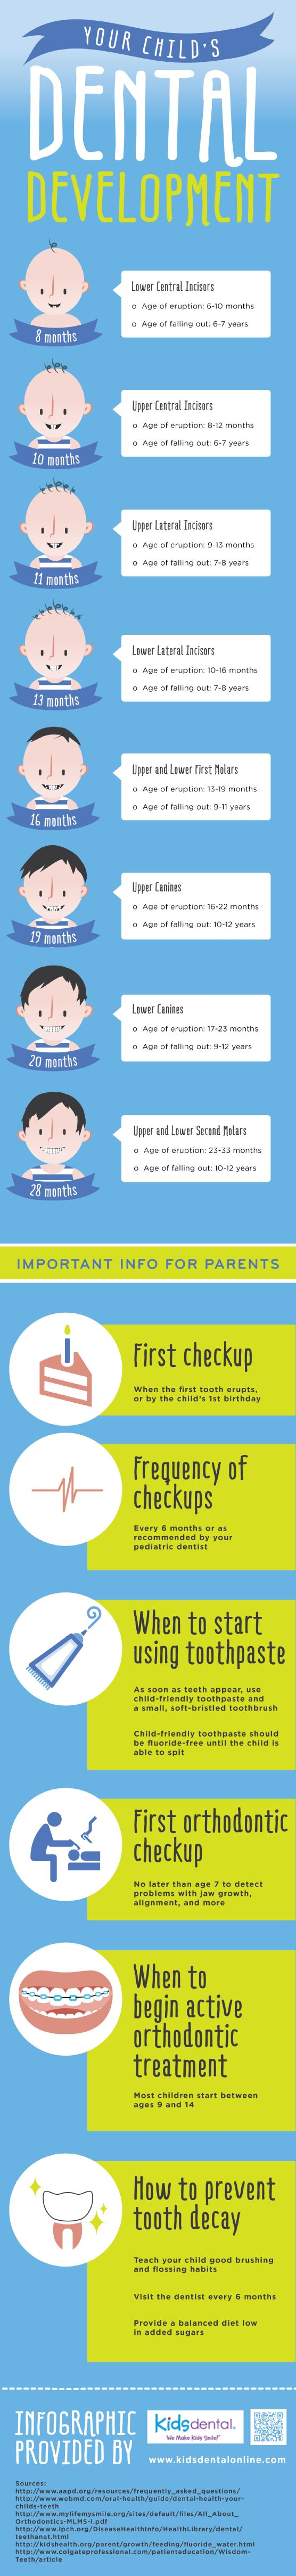 Children's central incisors typically erupt between 8 and 12 months of age. These teeth tend to fall out when children are around 6 or 7 years old. Discover other facts about children's teeth by viewing this infographic from a kids' dentist in Carrollton. http://reviewscircle.com/health-fitness/dental-health/natural-teeth-whitening